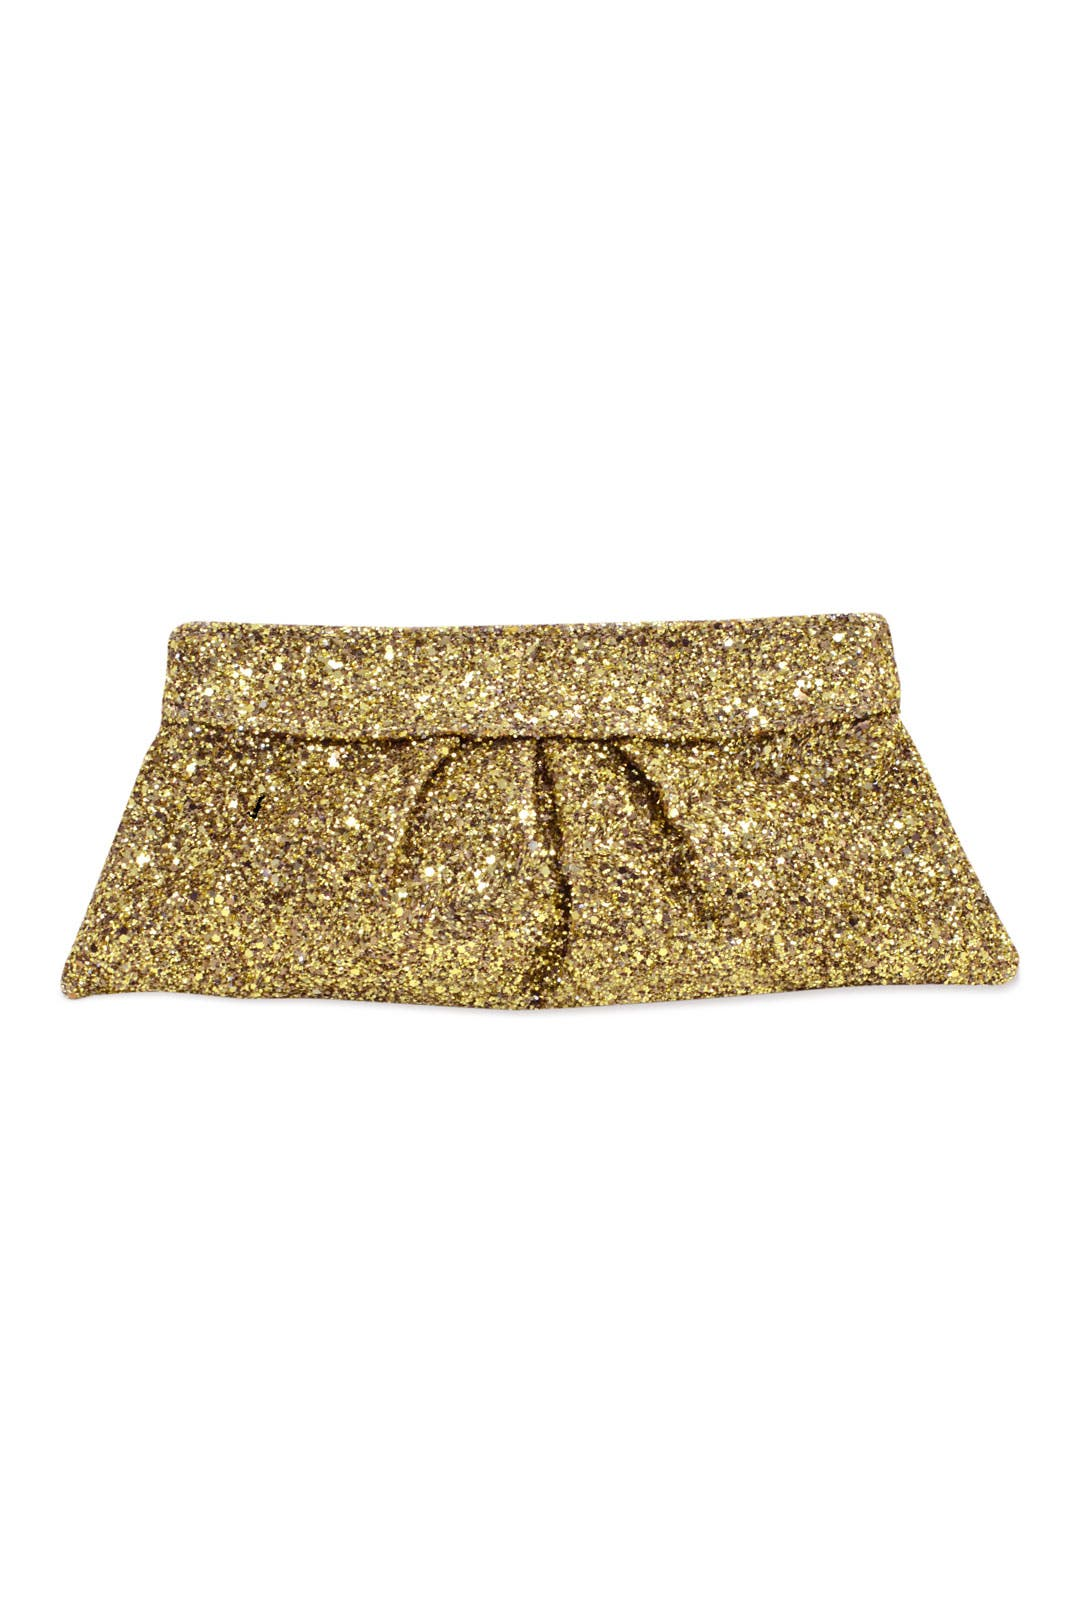 Gold Eve Glitter Encrusted Clutch by Lauren Merkin